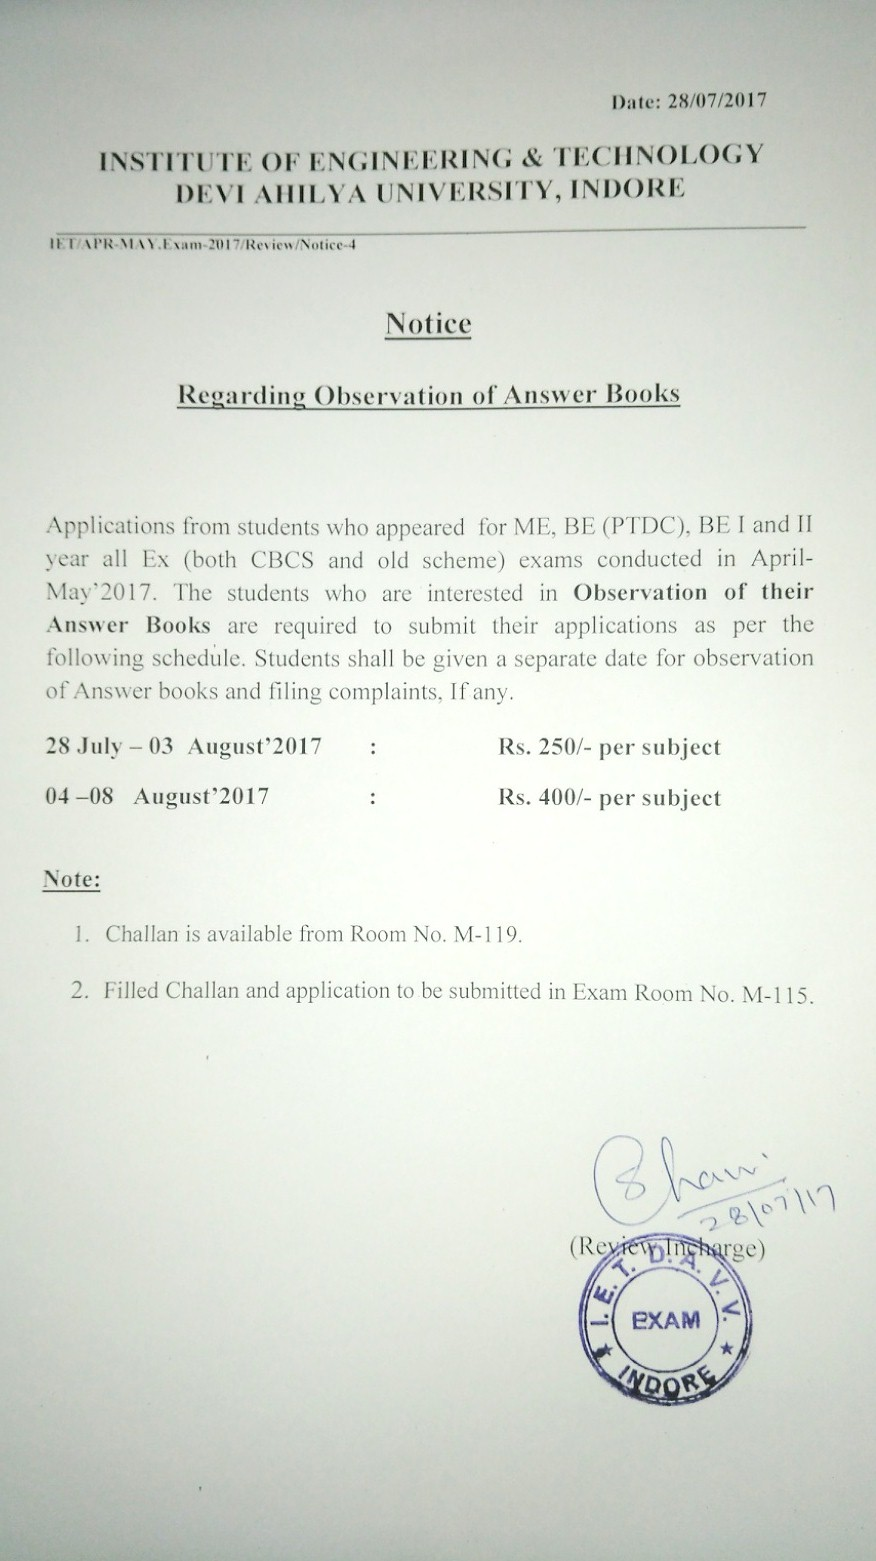 Institute of Engineering & Technology - Review Notice for BE ME PTDC